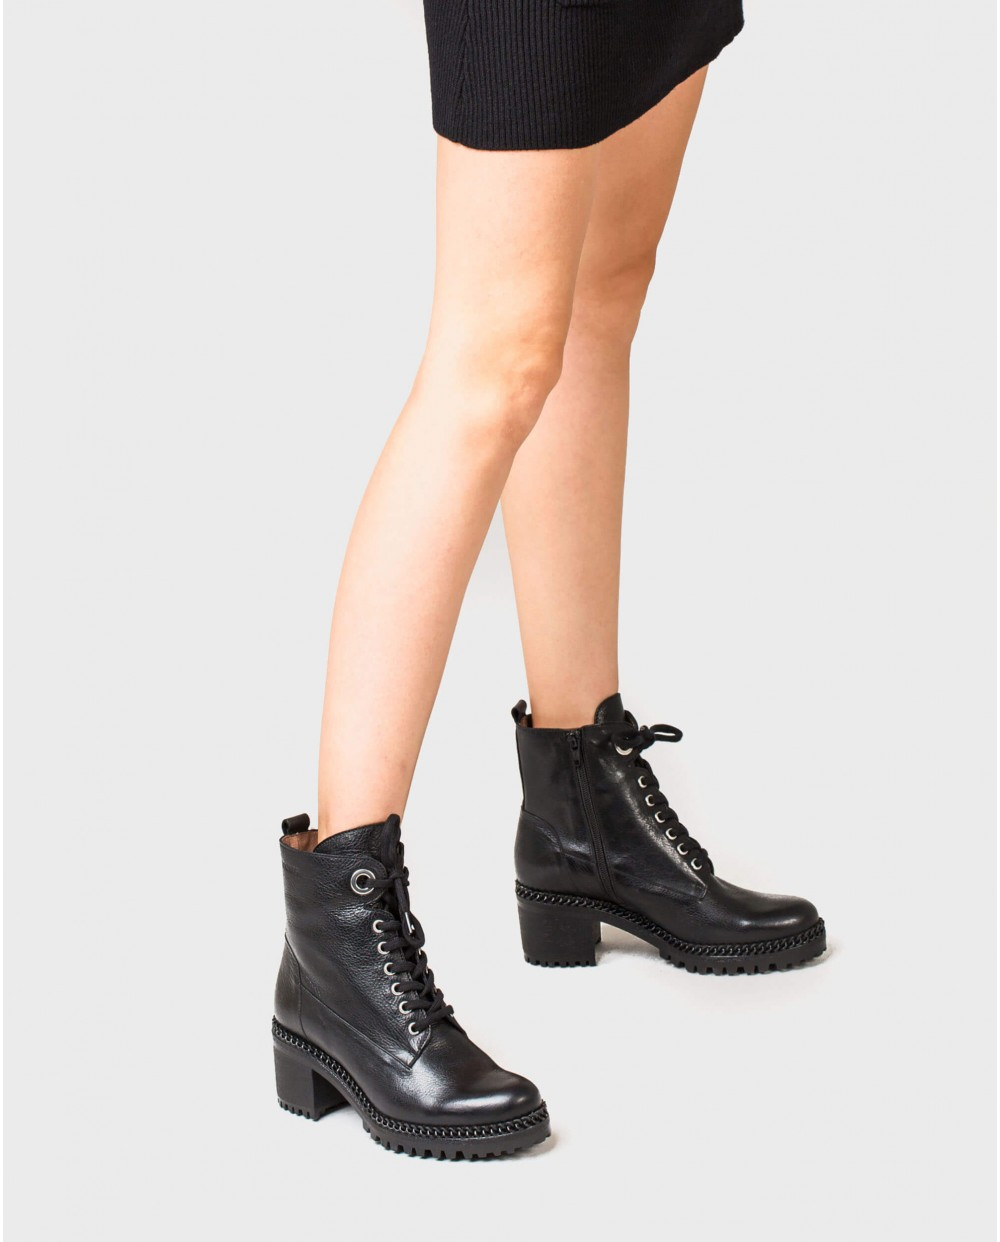 Wonders-Ankle Boots-Leather ankle boot with buckle detail